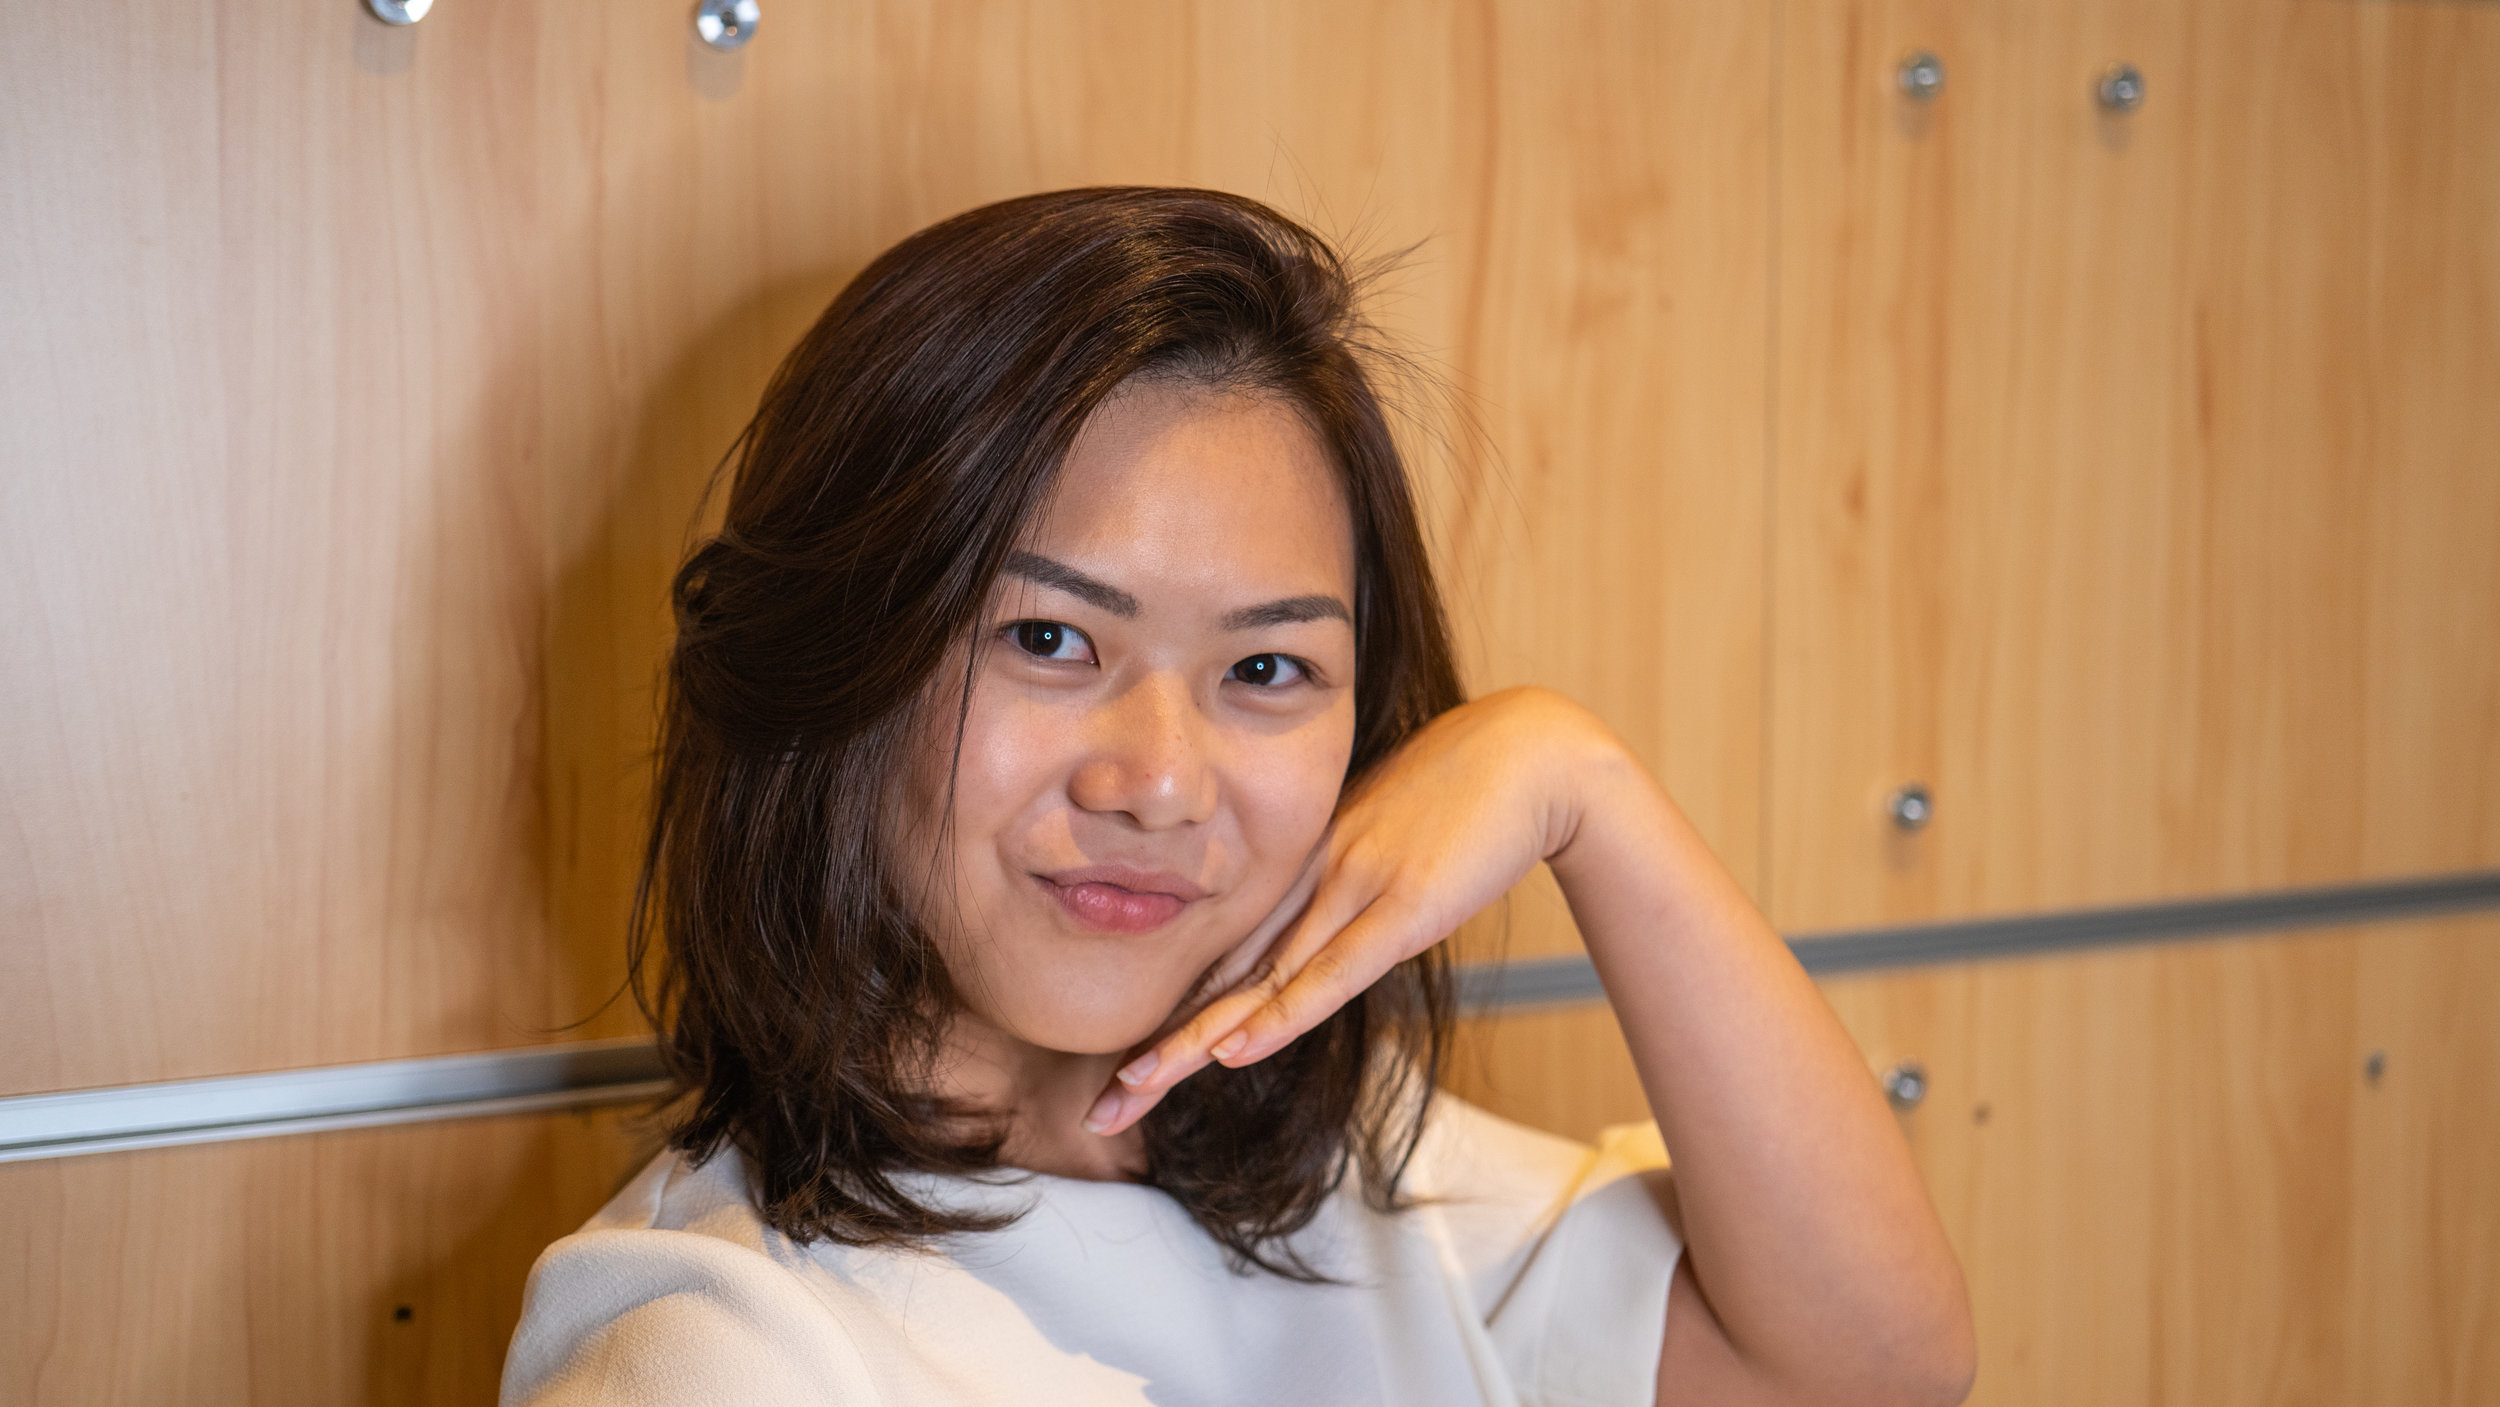 Pretty female hair model smiling and posing with hand at Du Sol Beauty Singapore located at Novena Square 2